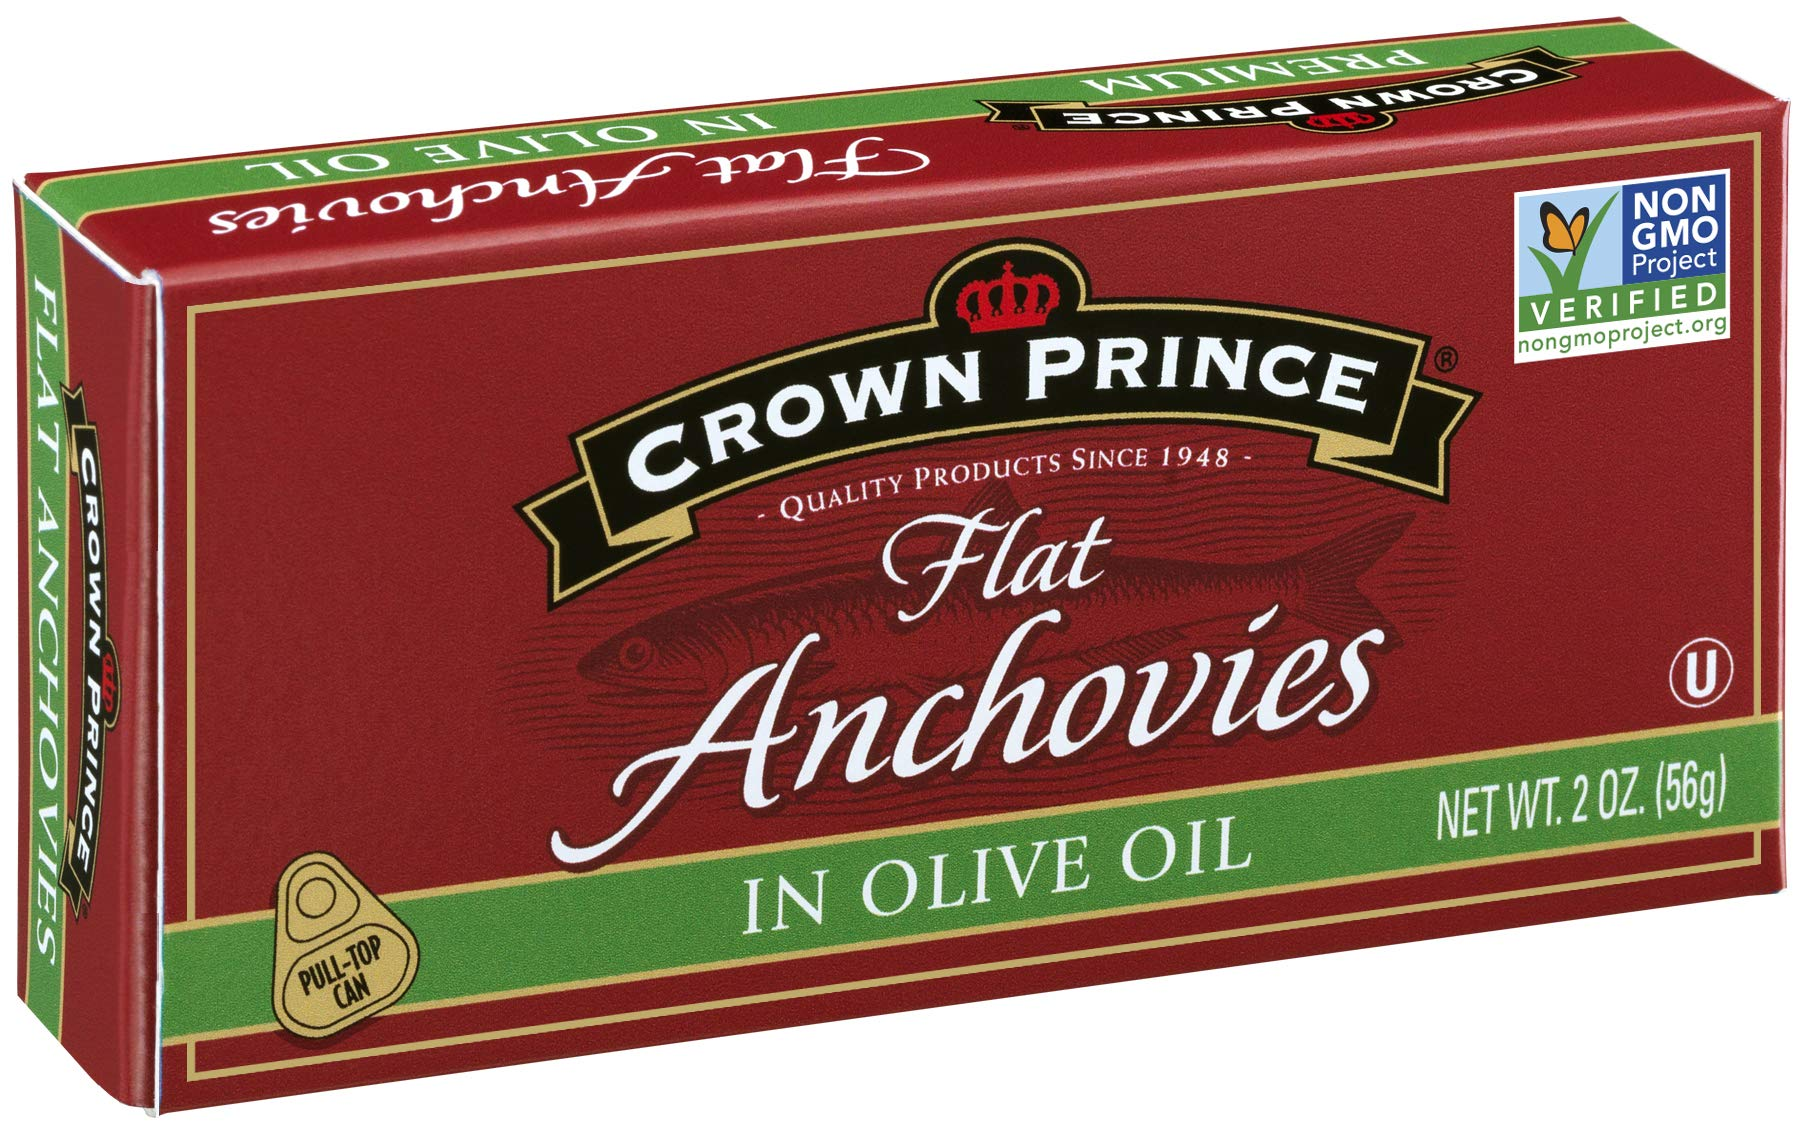 Crown Prince Flat Anchovies in Olive Oil, 2-Ounce Cans (Pack of 12) by Crown Prince